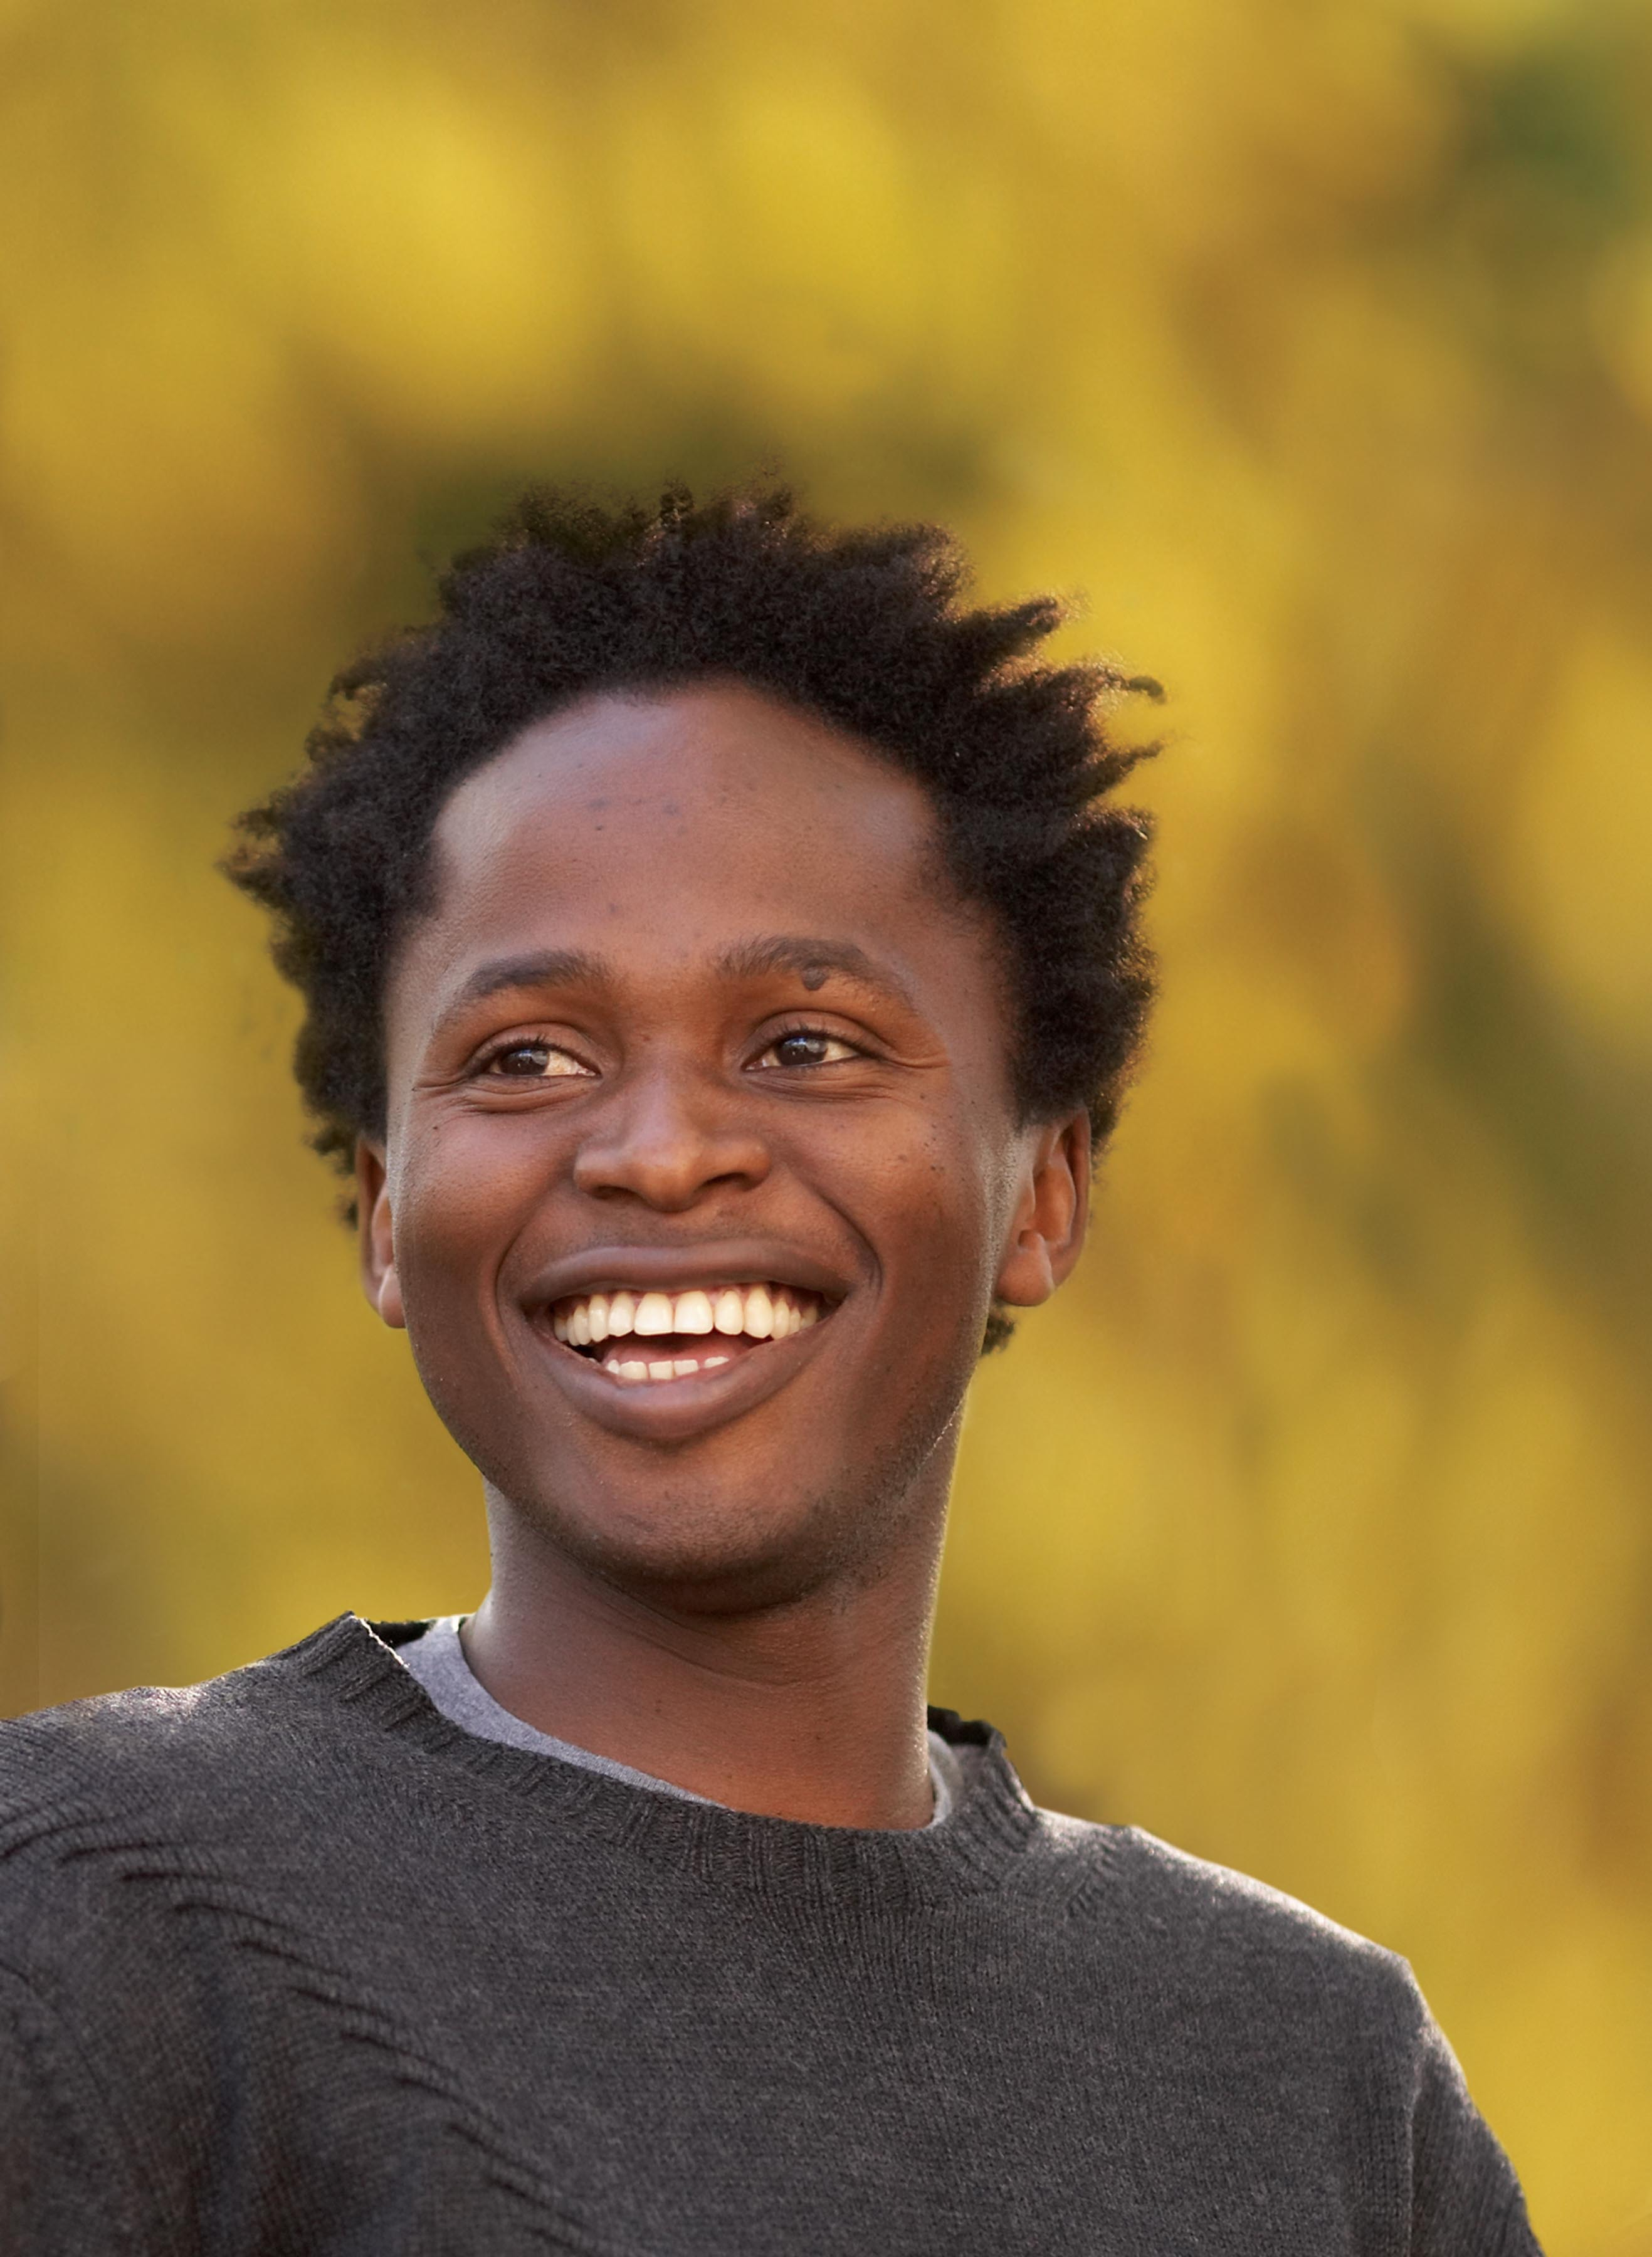 Ishmael Beah, author of A LONG WAY GONE. Photo by John Madere.